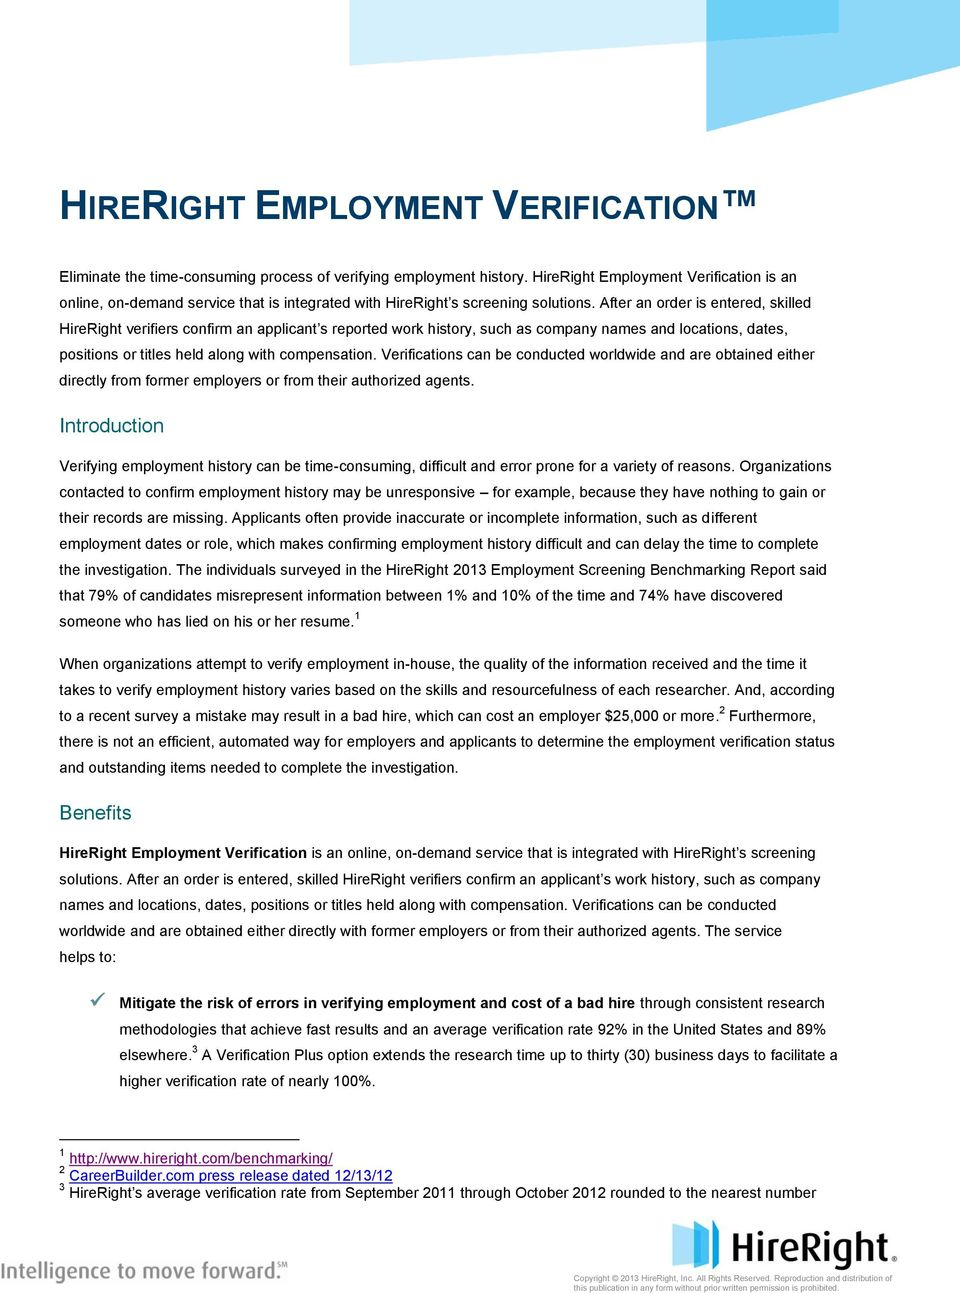 HIRERIGHT EMPLOYMENT VERIFICATION - PDF